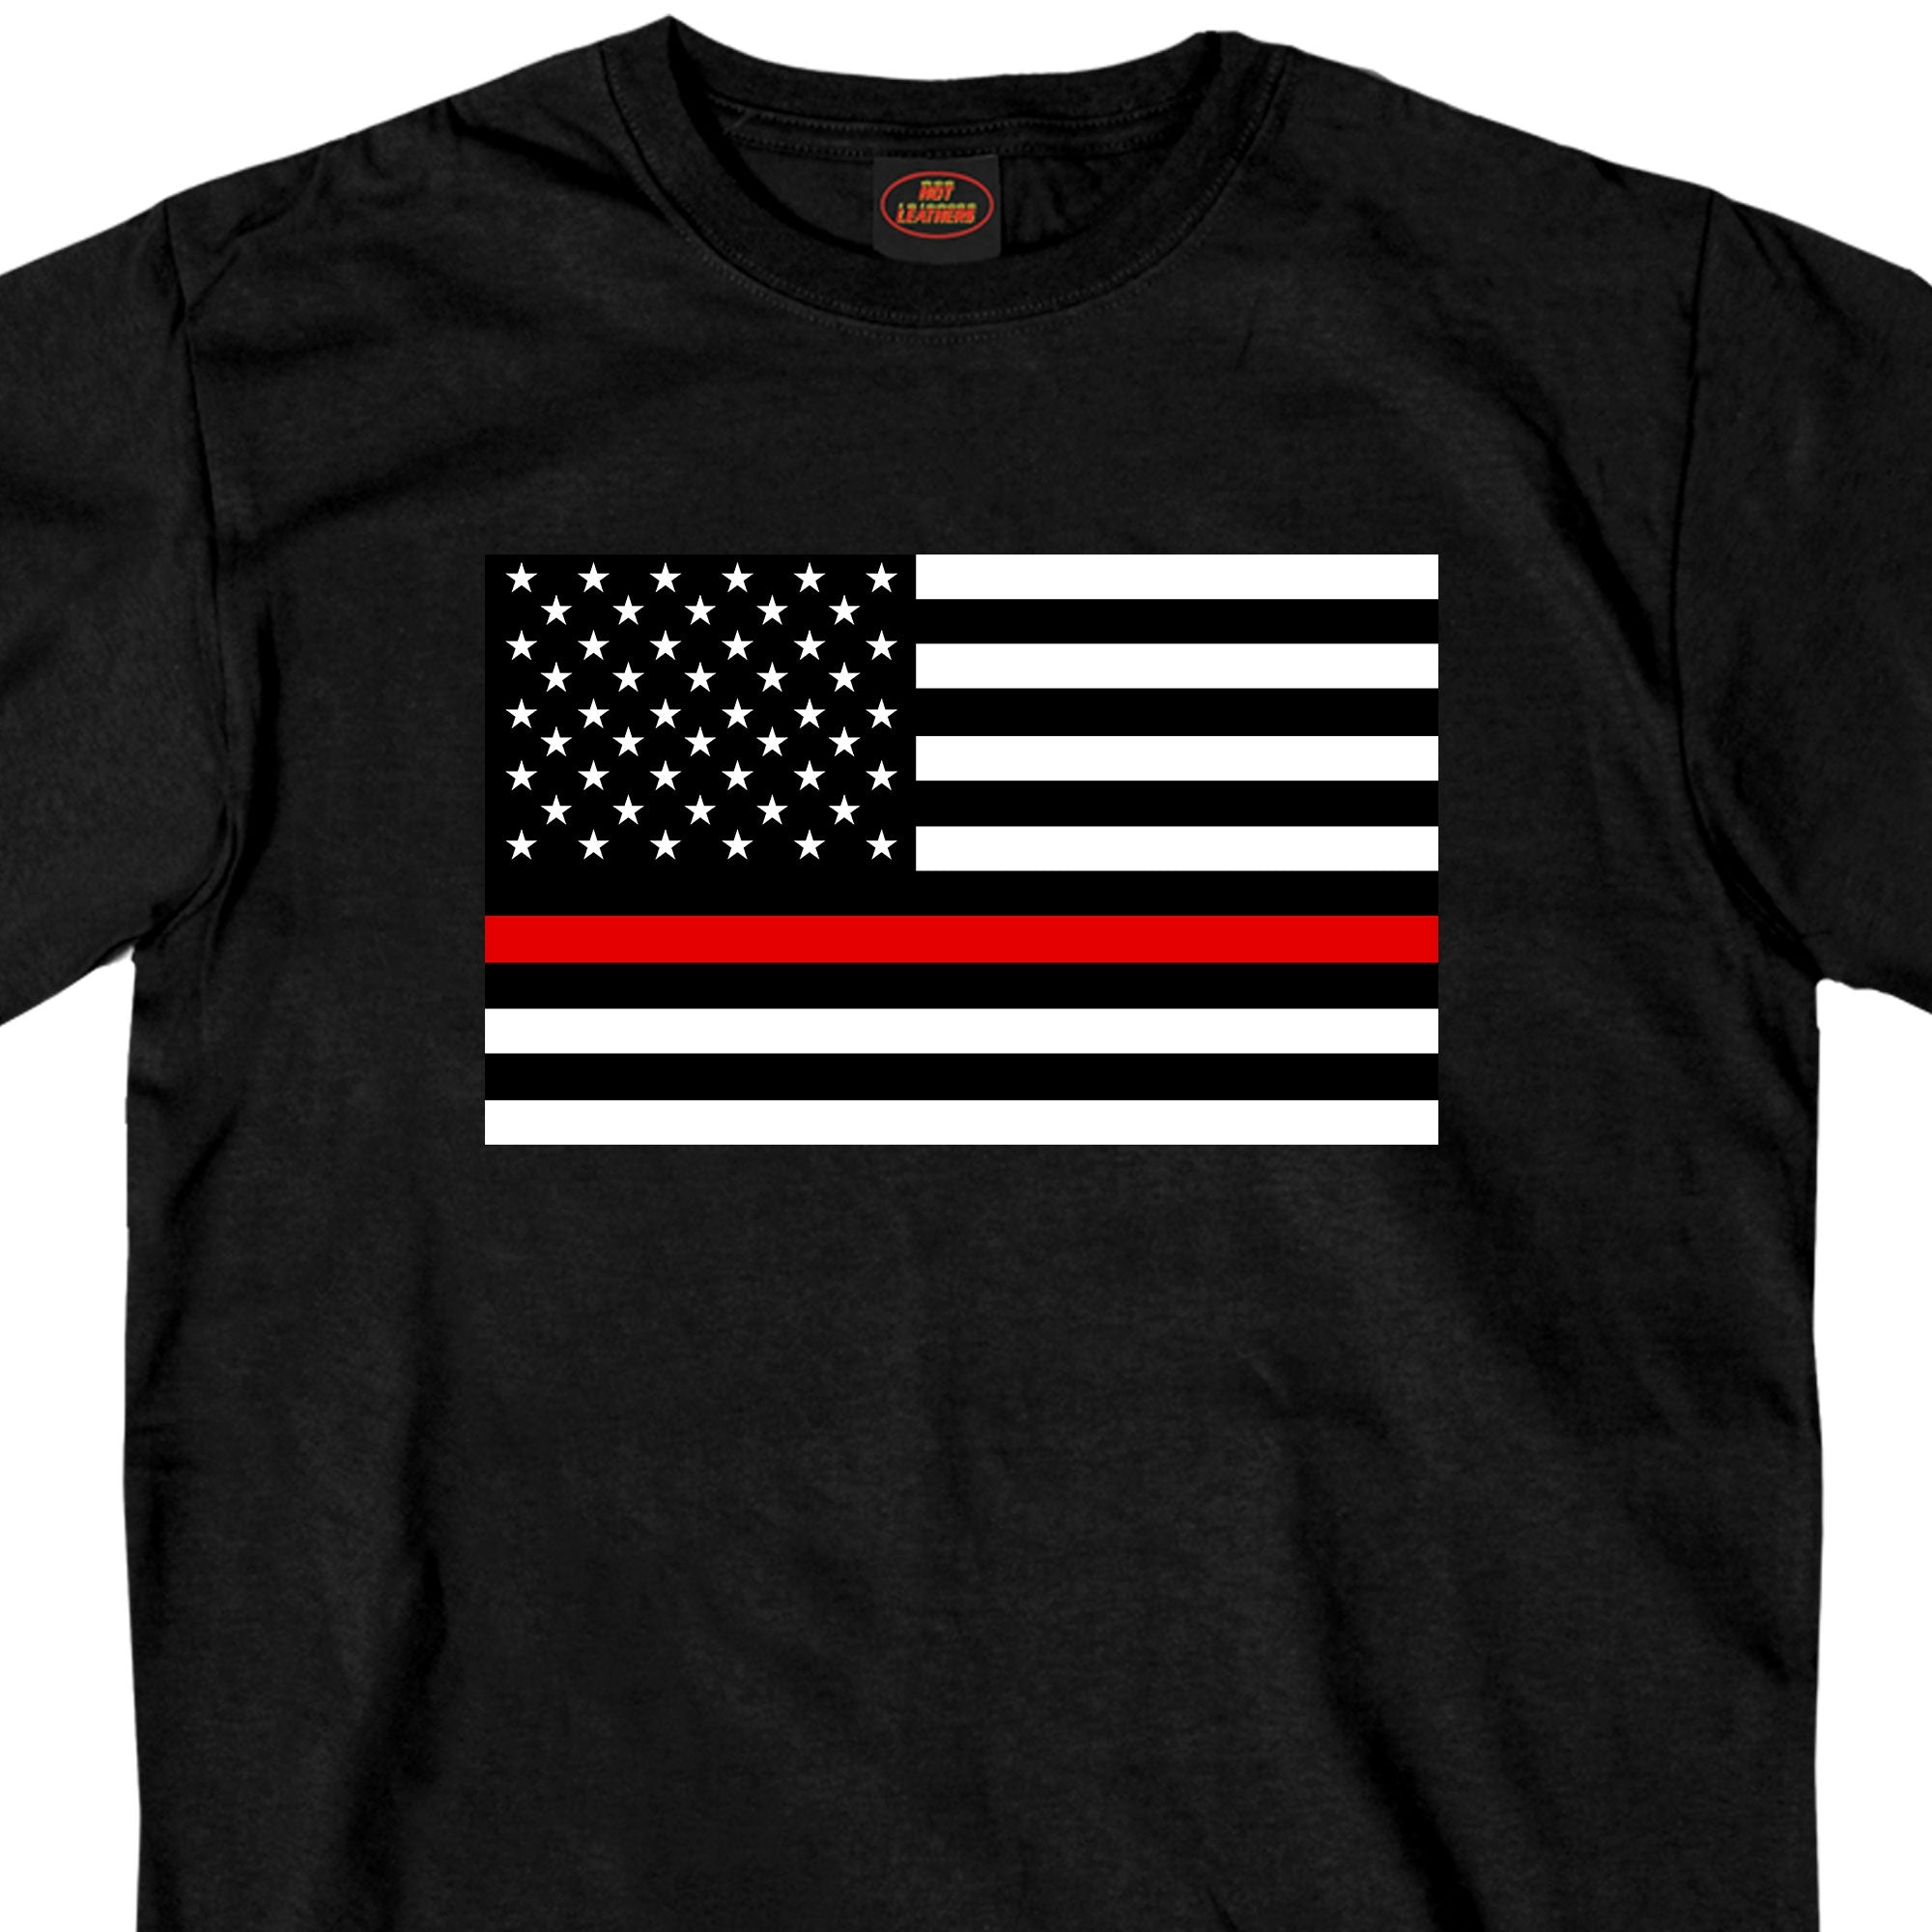 Hot Leathers Thin Red Line USA Flag T-Shirt